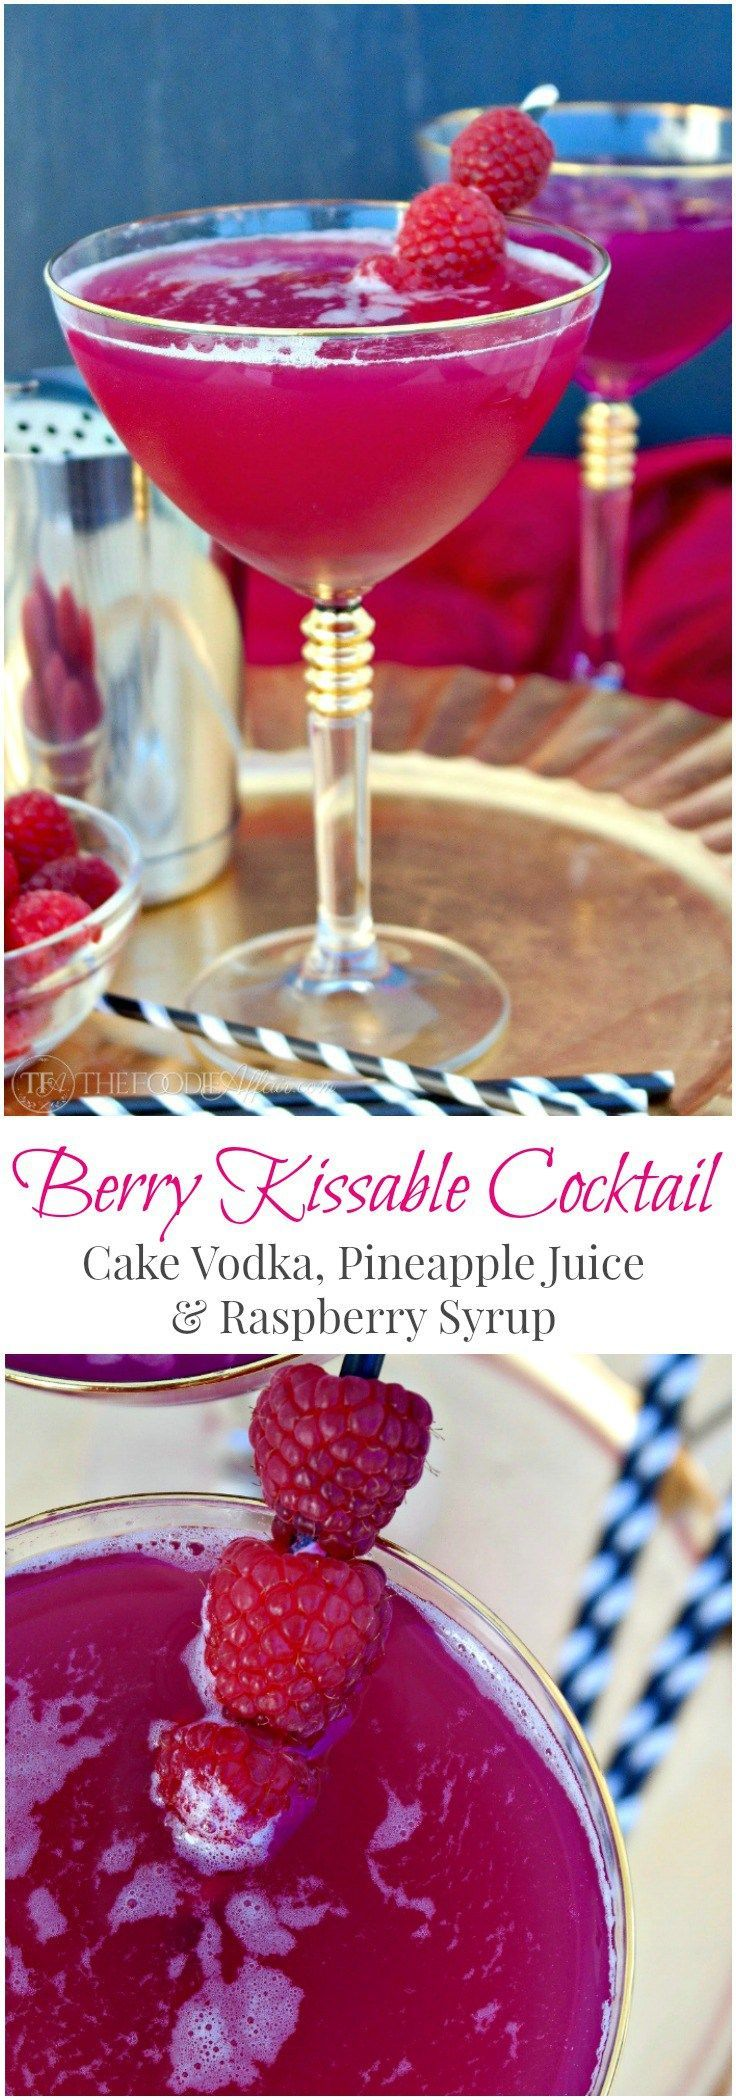 Berry Kissable Cocktail made with ruby red raspberries, cake vodka and pineapple juice! The Foodie Affair